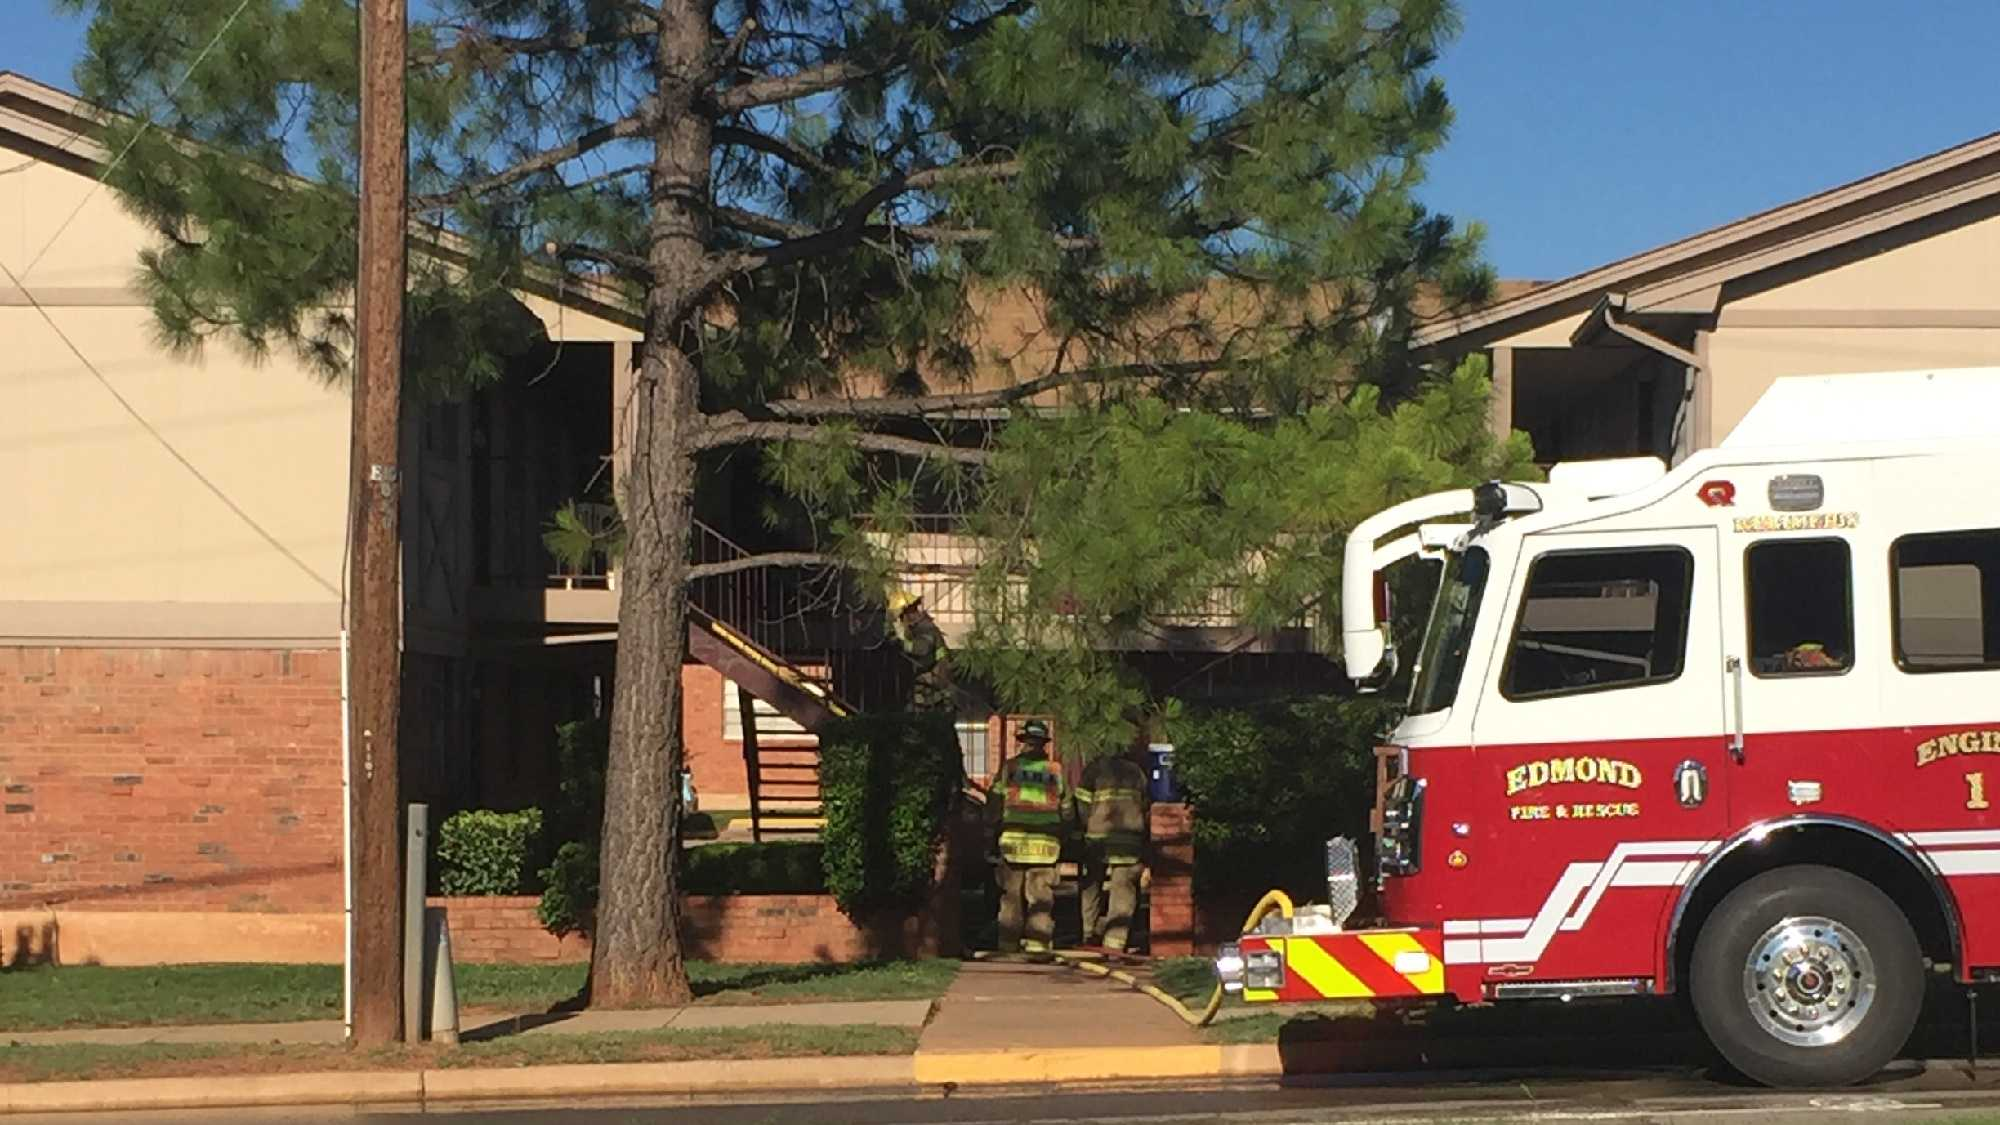 Edmond firefighters are battling a two-story apartment complex fire Sunday evening.